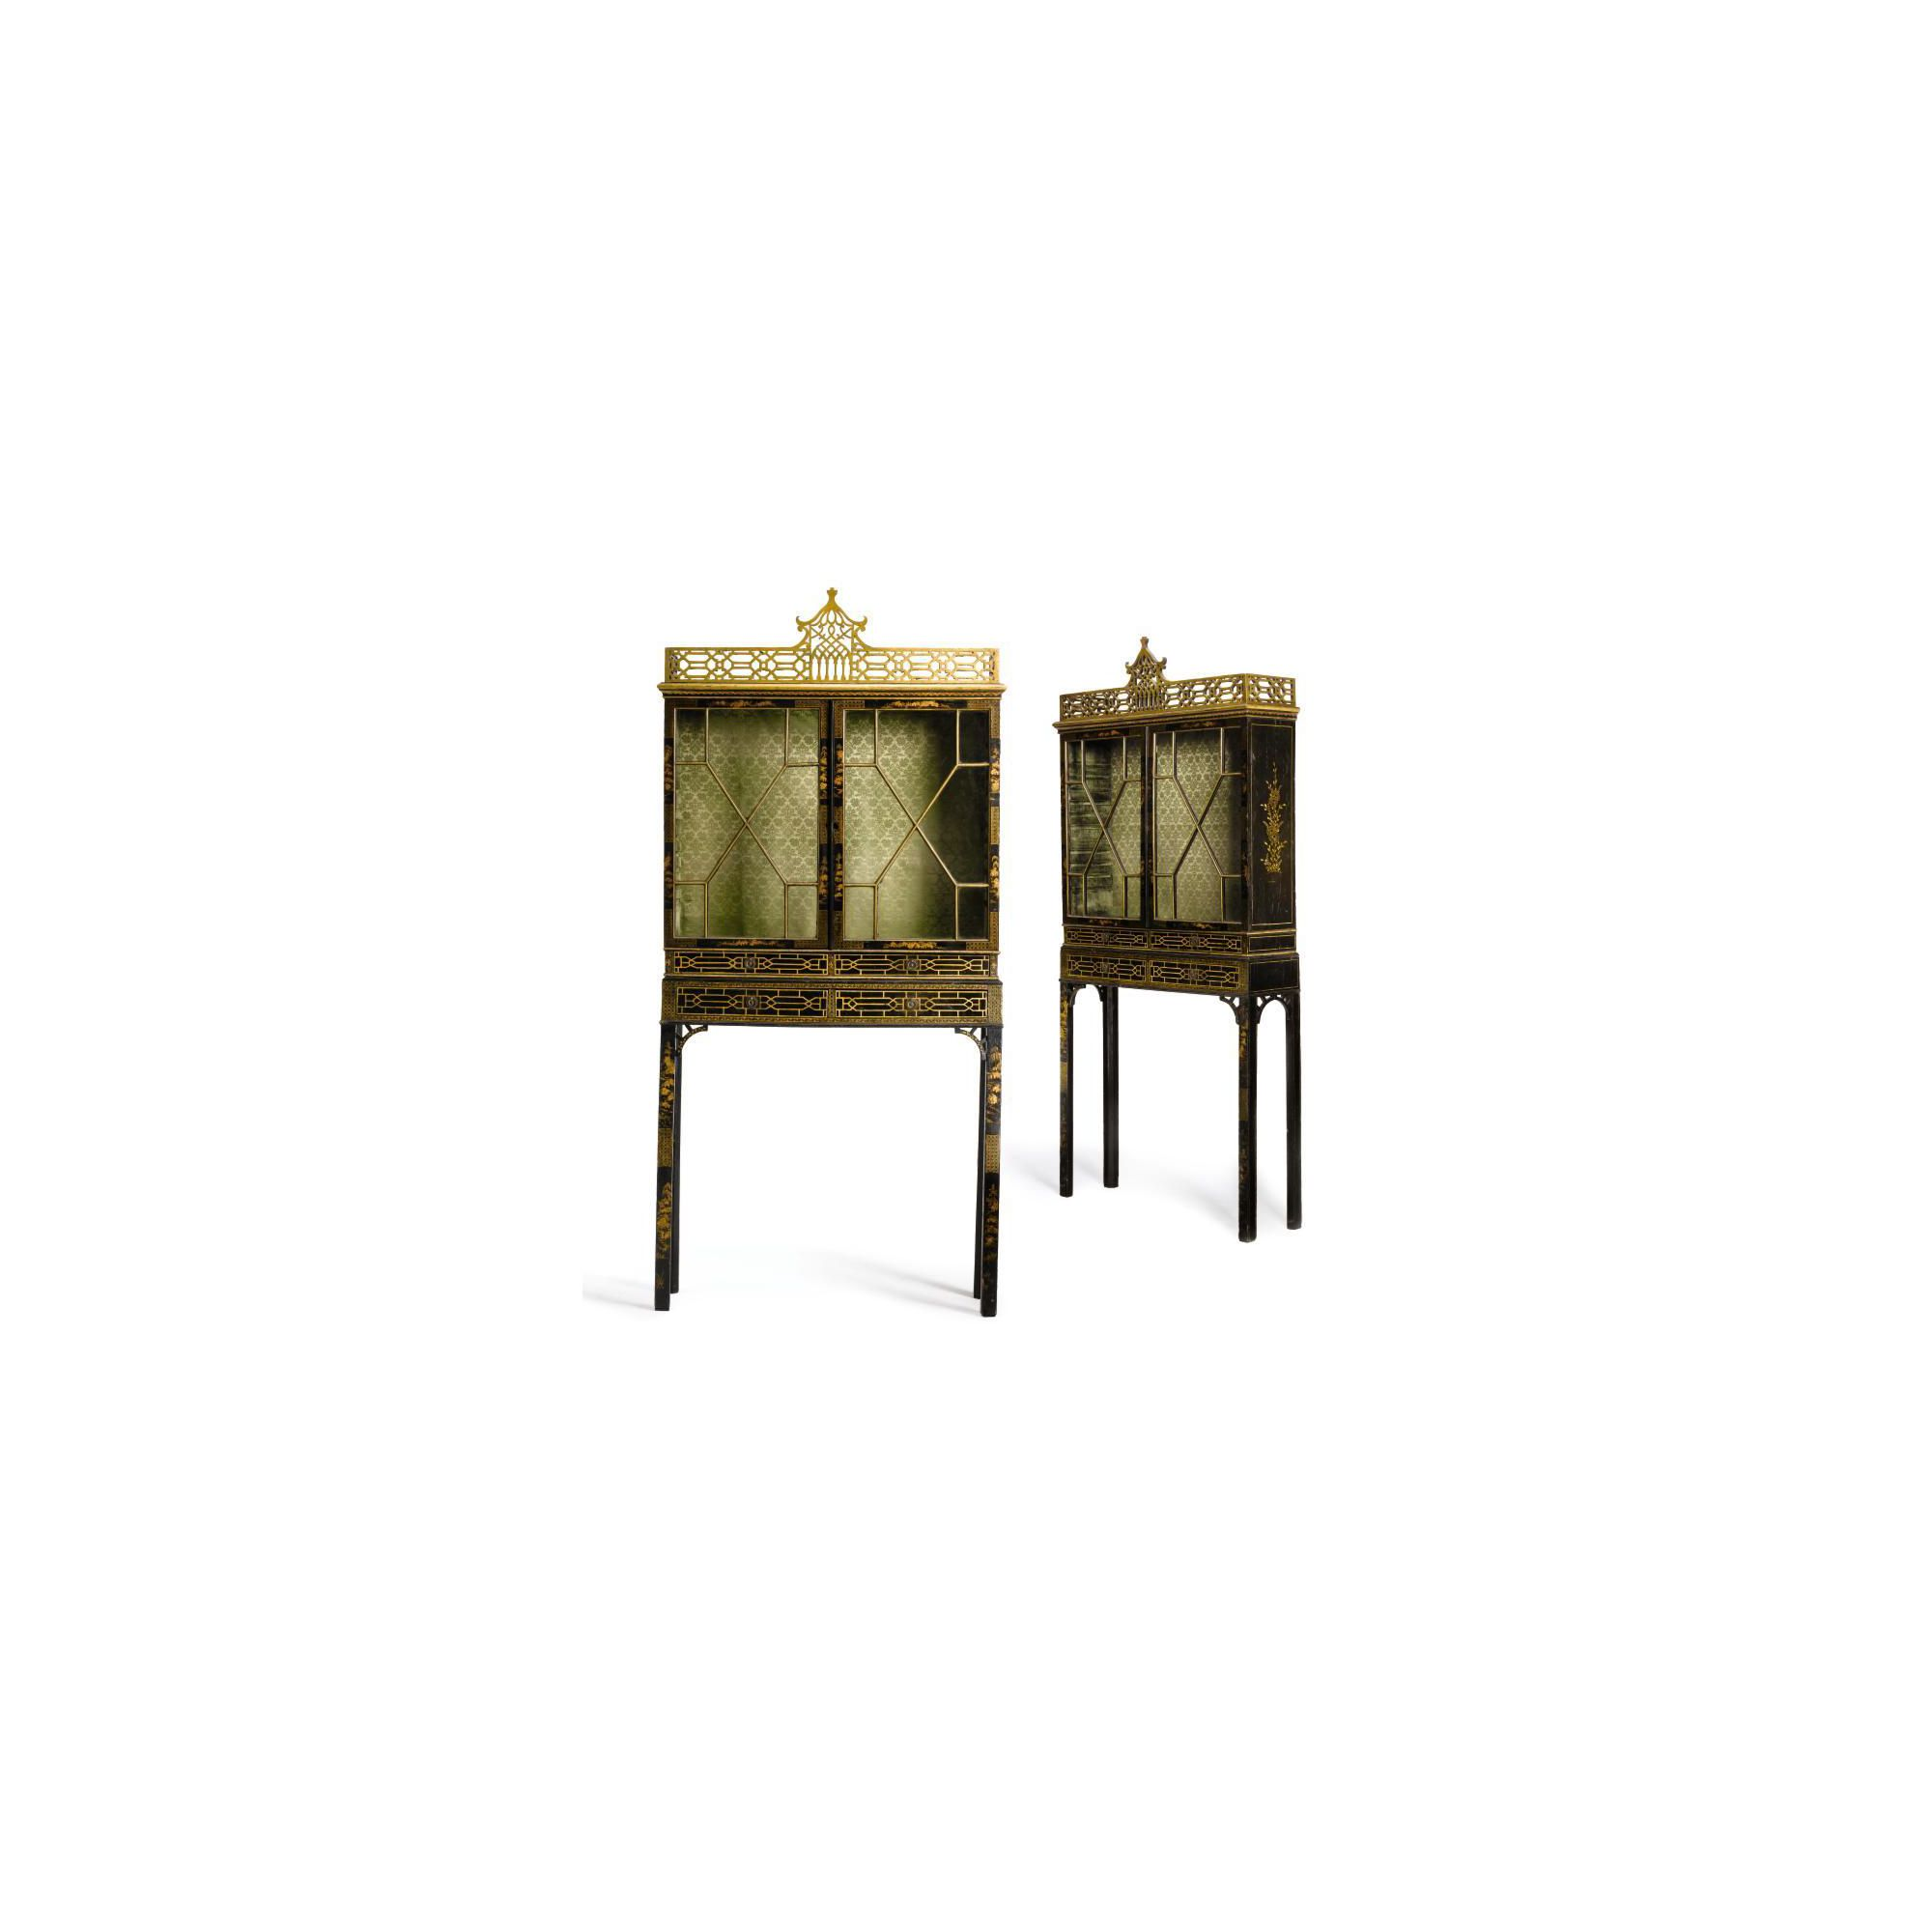 A Pair of George III Black Japanned and Chinoiserie cabinets on Stands<br>Circa 1760 | Lot | Sotheby's